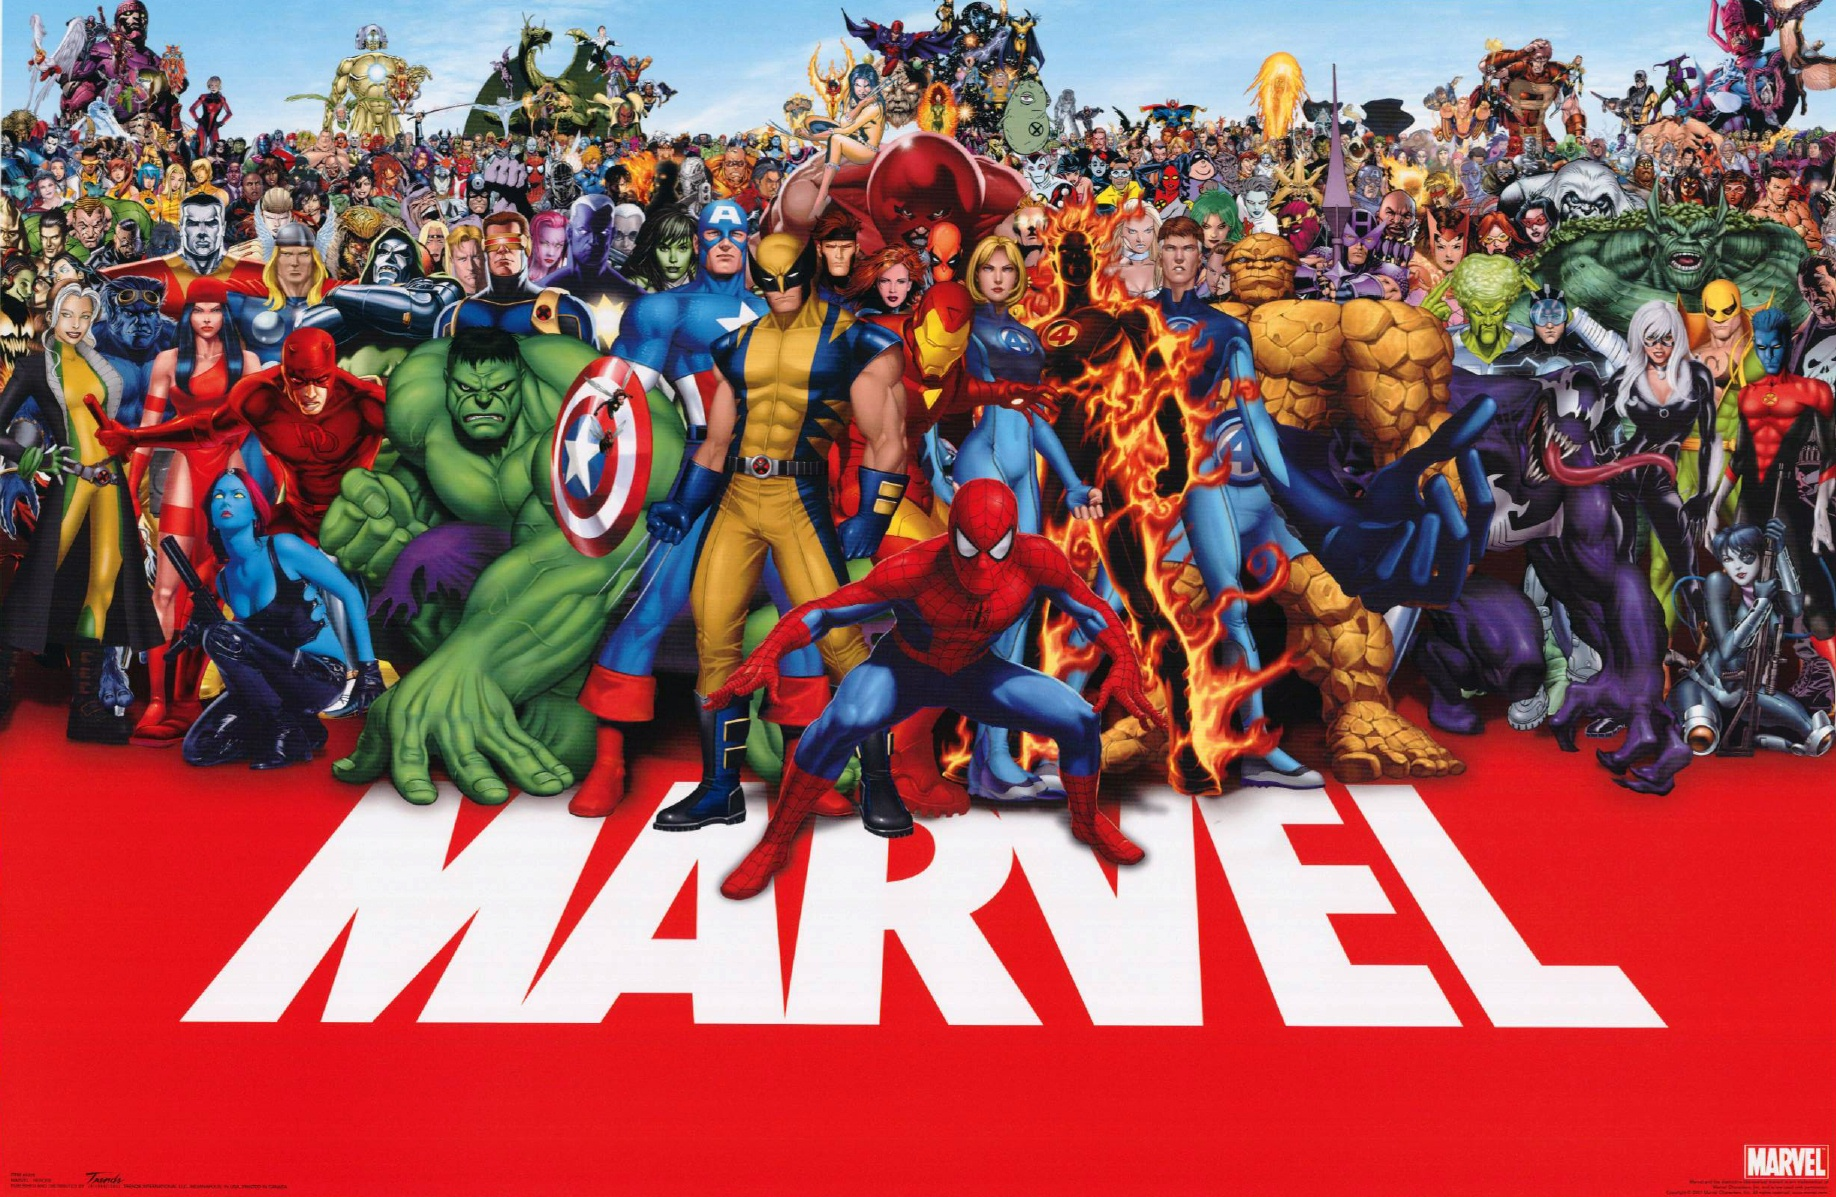 Read 75 years of Marvel comics for 75 cents